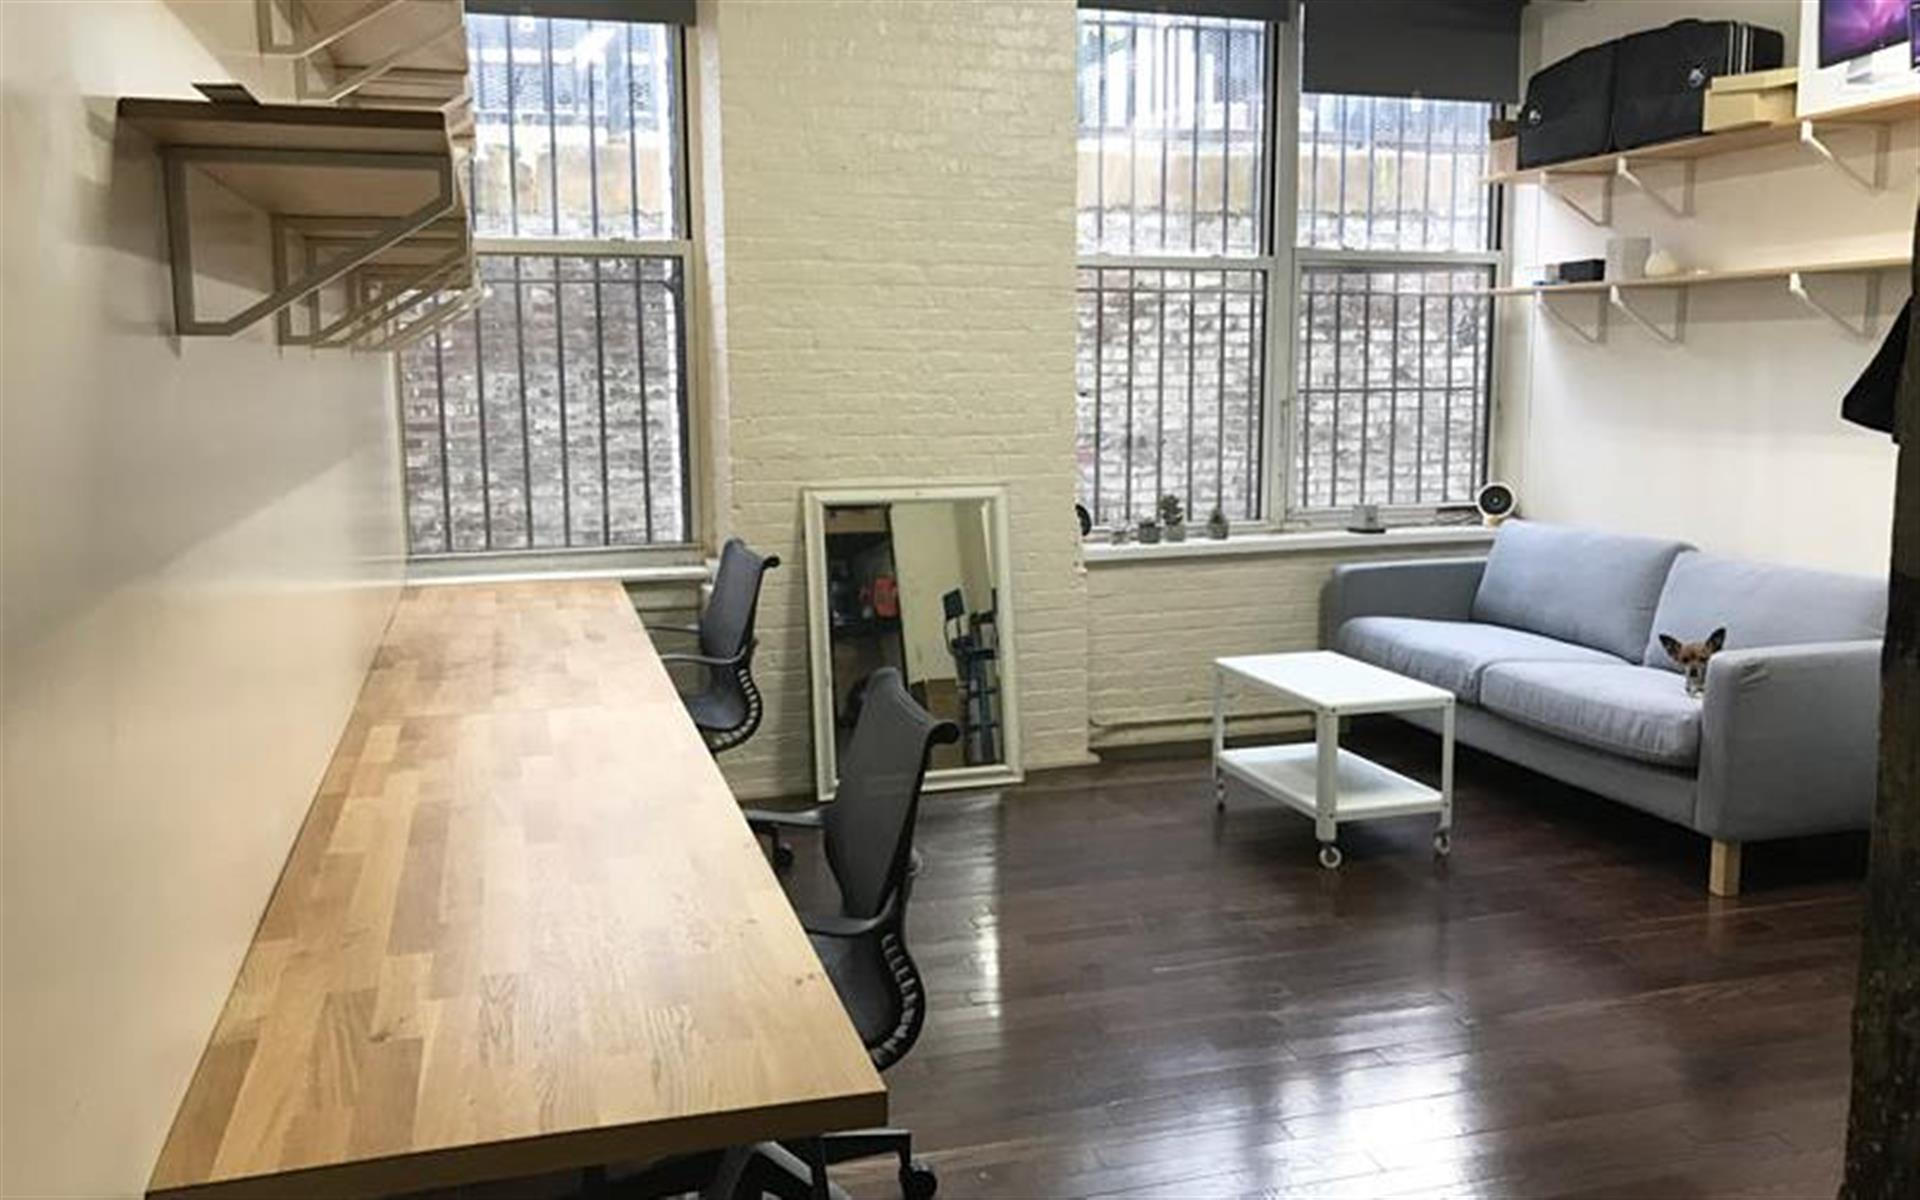 Dedicated Desk - South Williamsburg - Studio 5, Office with Large Windows